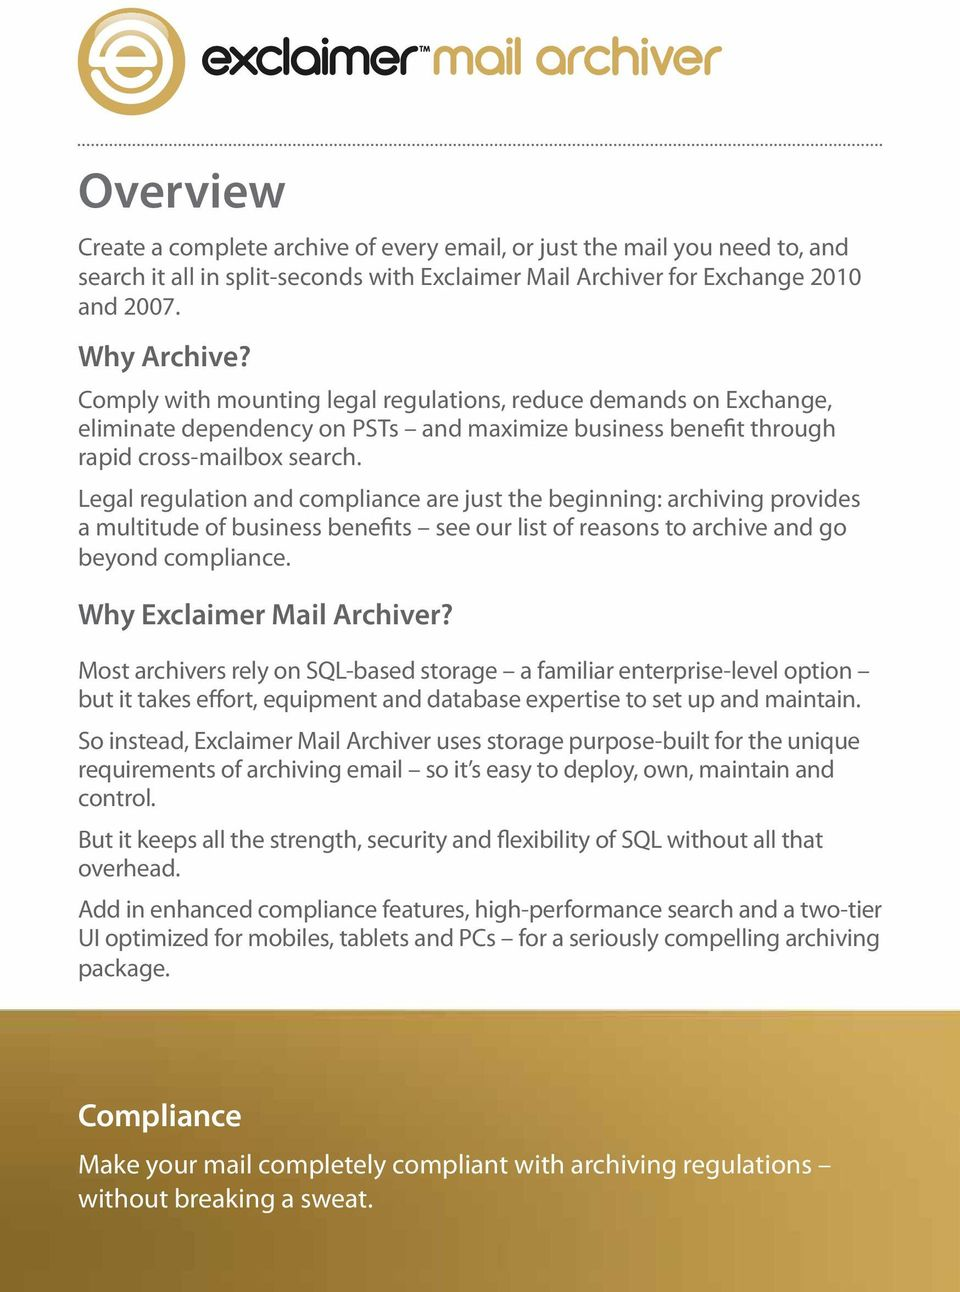 Legal regulation and compliance are just the beginning: archiving provides a multitude of business benefits see our list of reasons to archive and go beyond compliance. Why Exclaimer Mail Archiver?